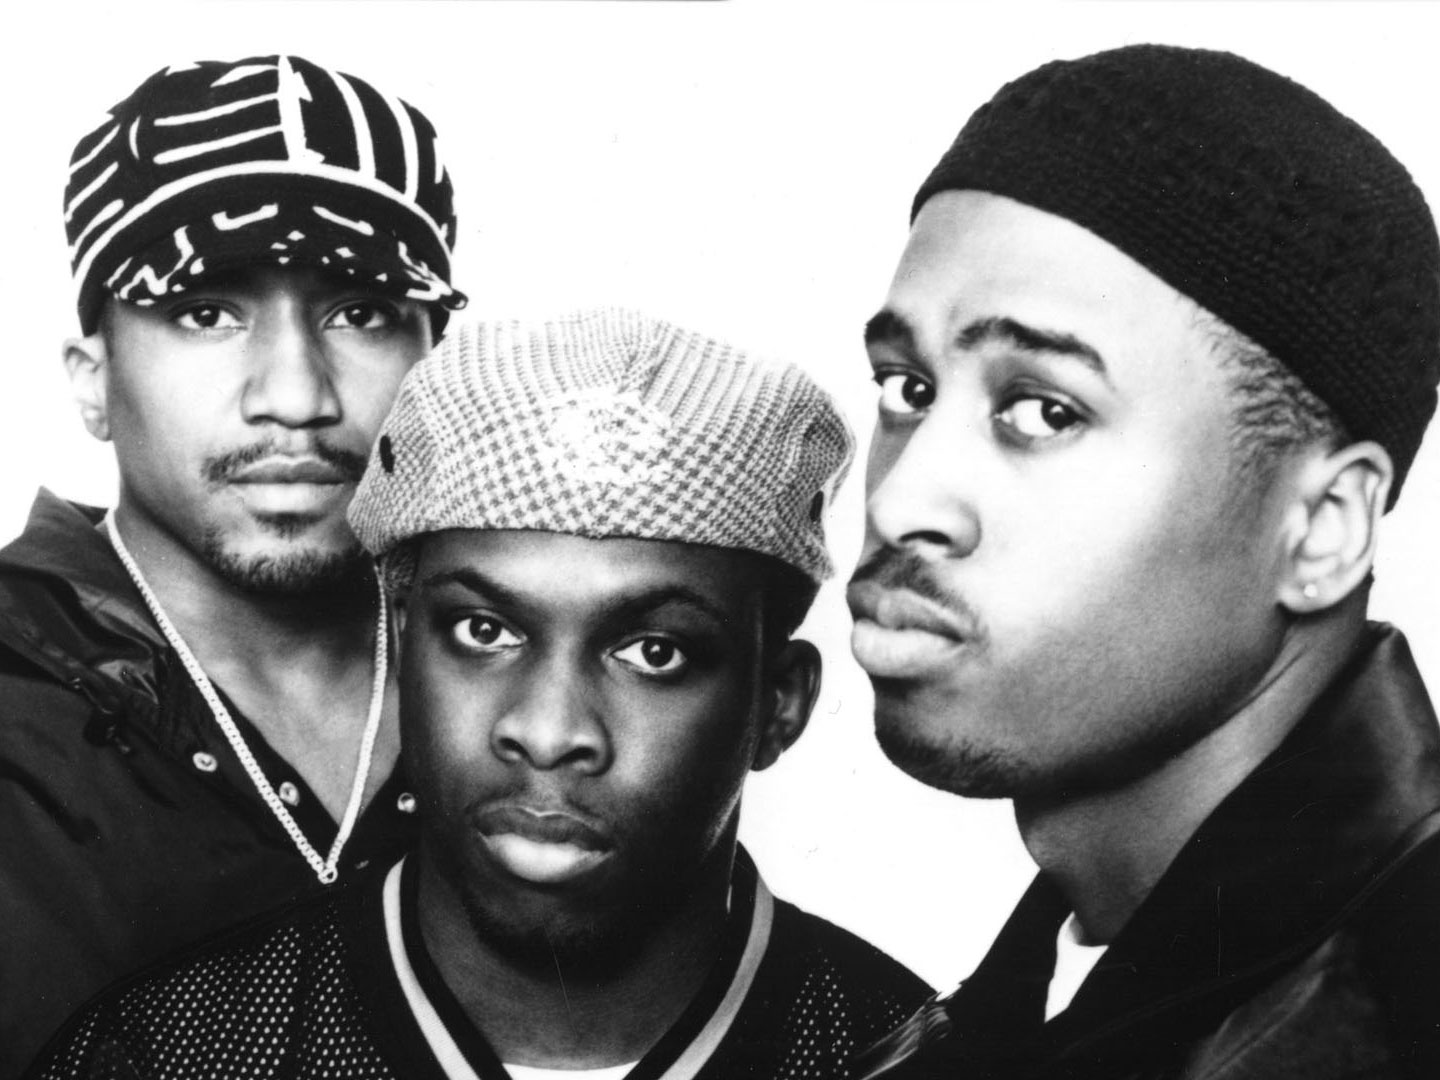 Promo photo of A Tribe Called Quest